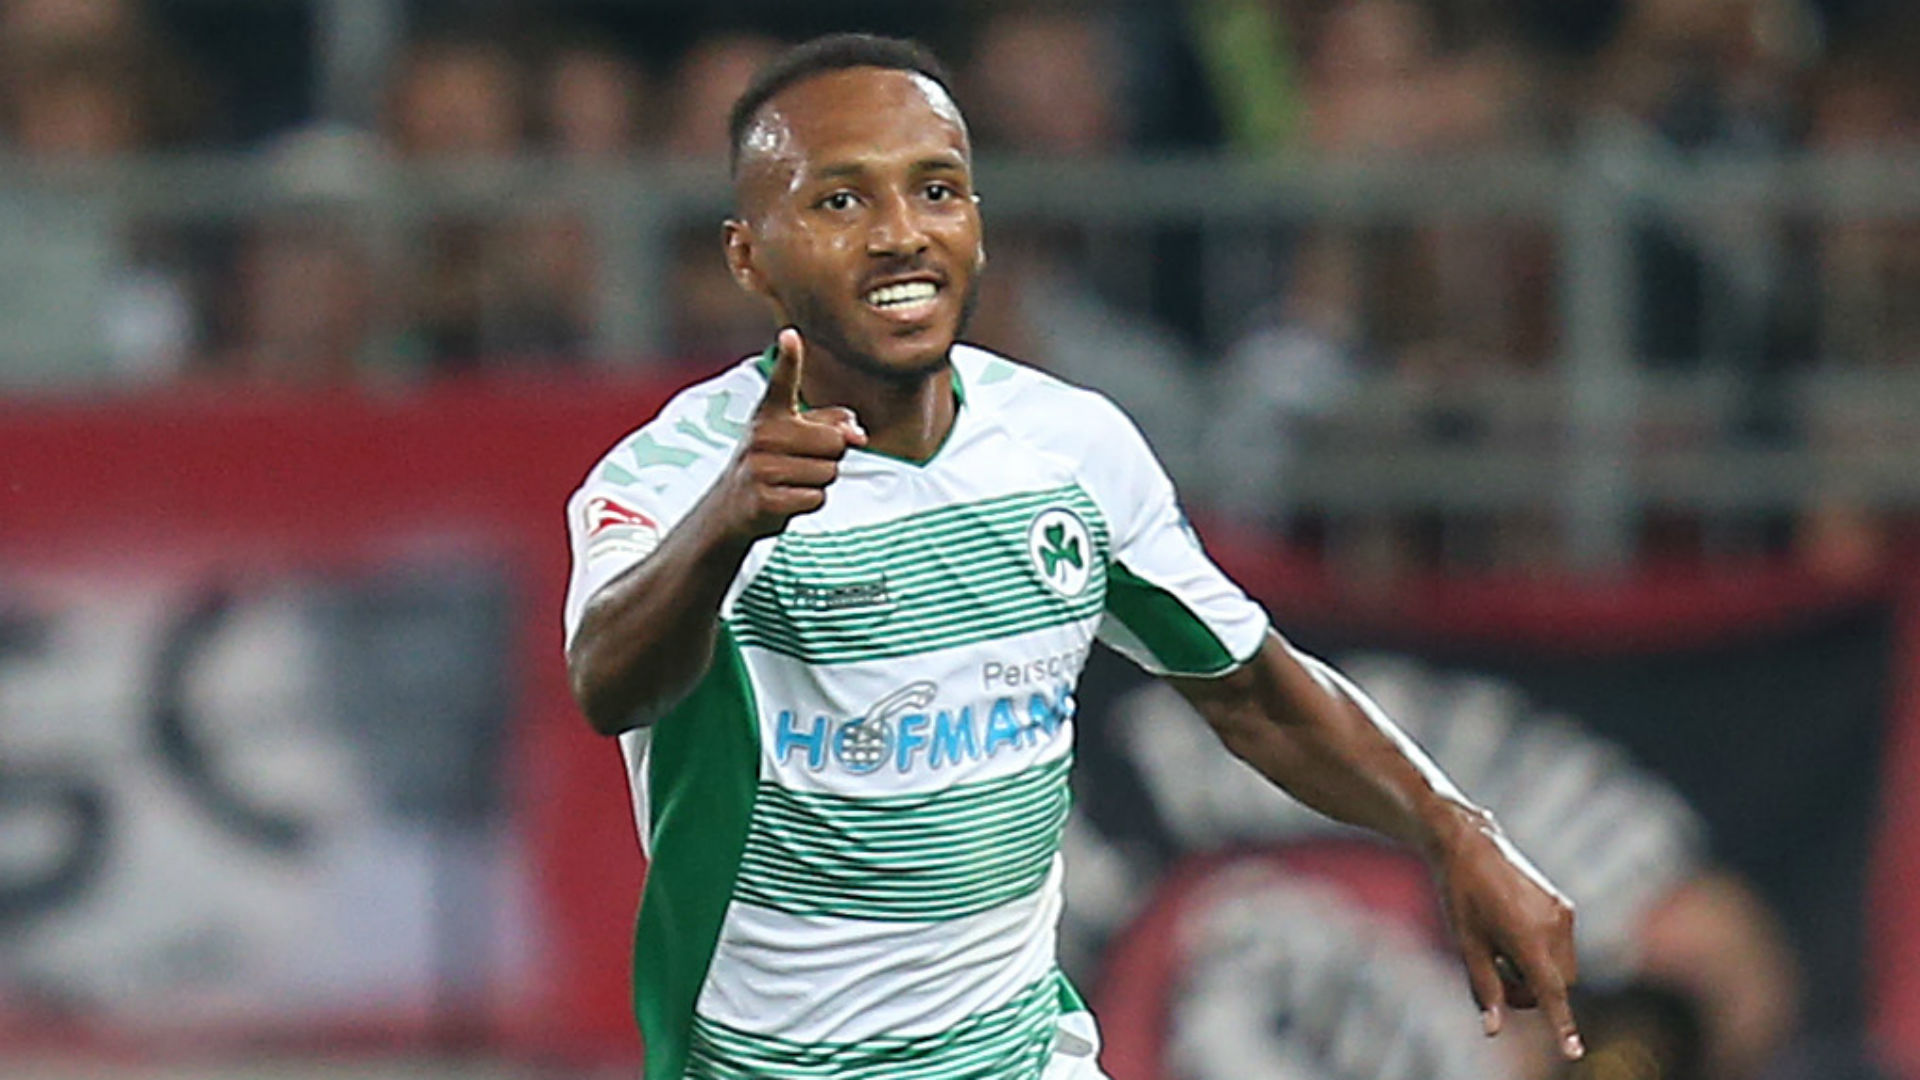 USMNT vet Julian Green signs contract extension with Greuther Furth